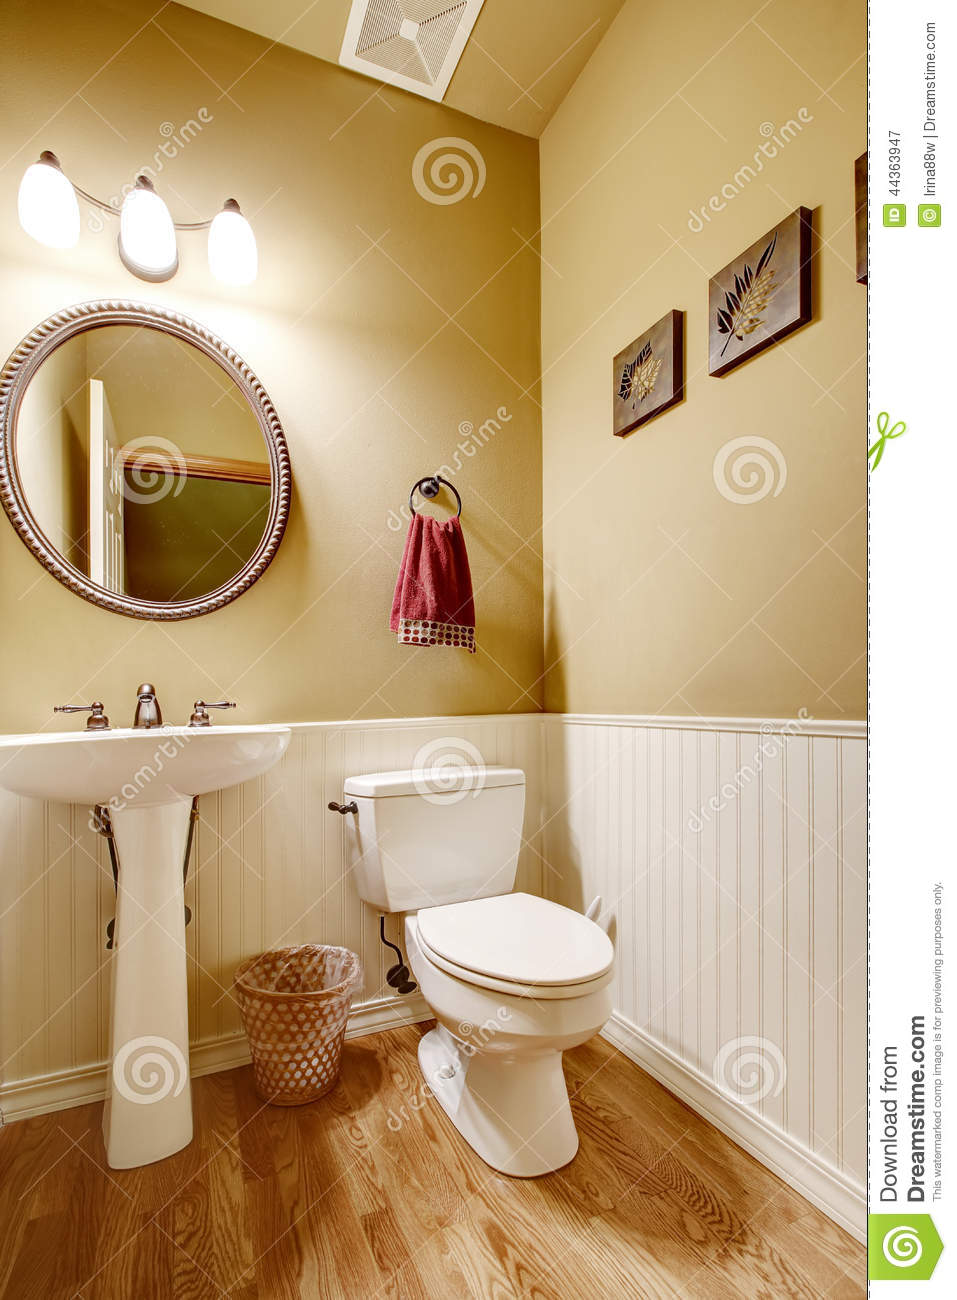 Small Bathroom With White Wall Trim Stock Photo Image